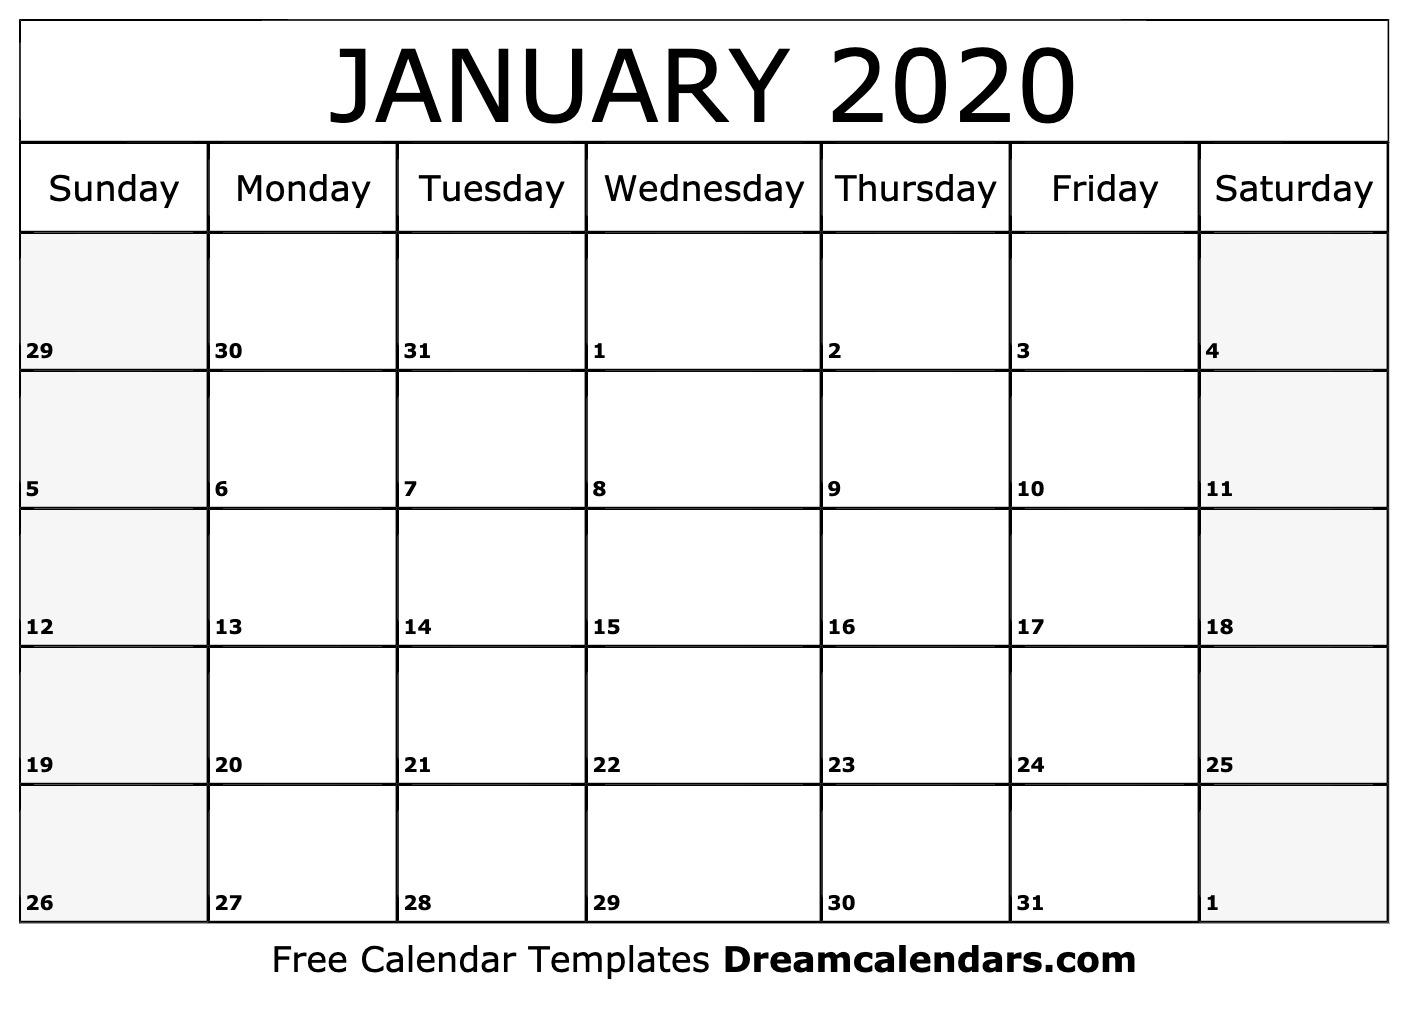 Calendar For January 2020 Printable January 2020 Calendar